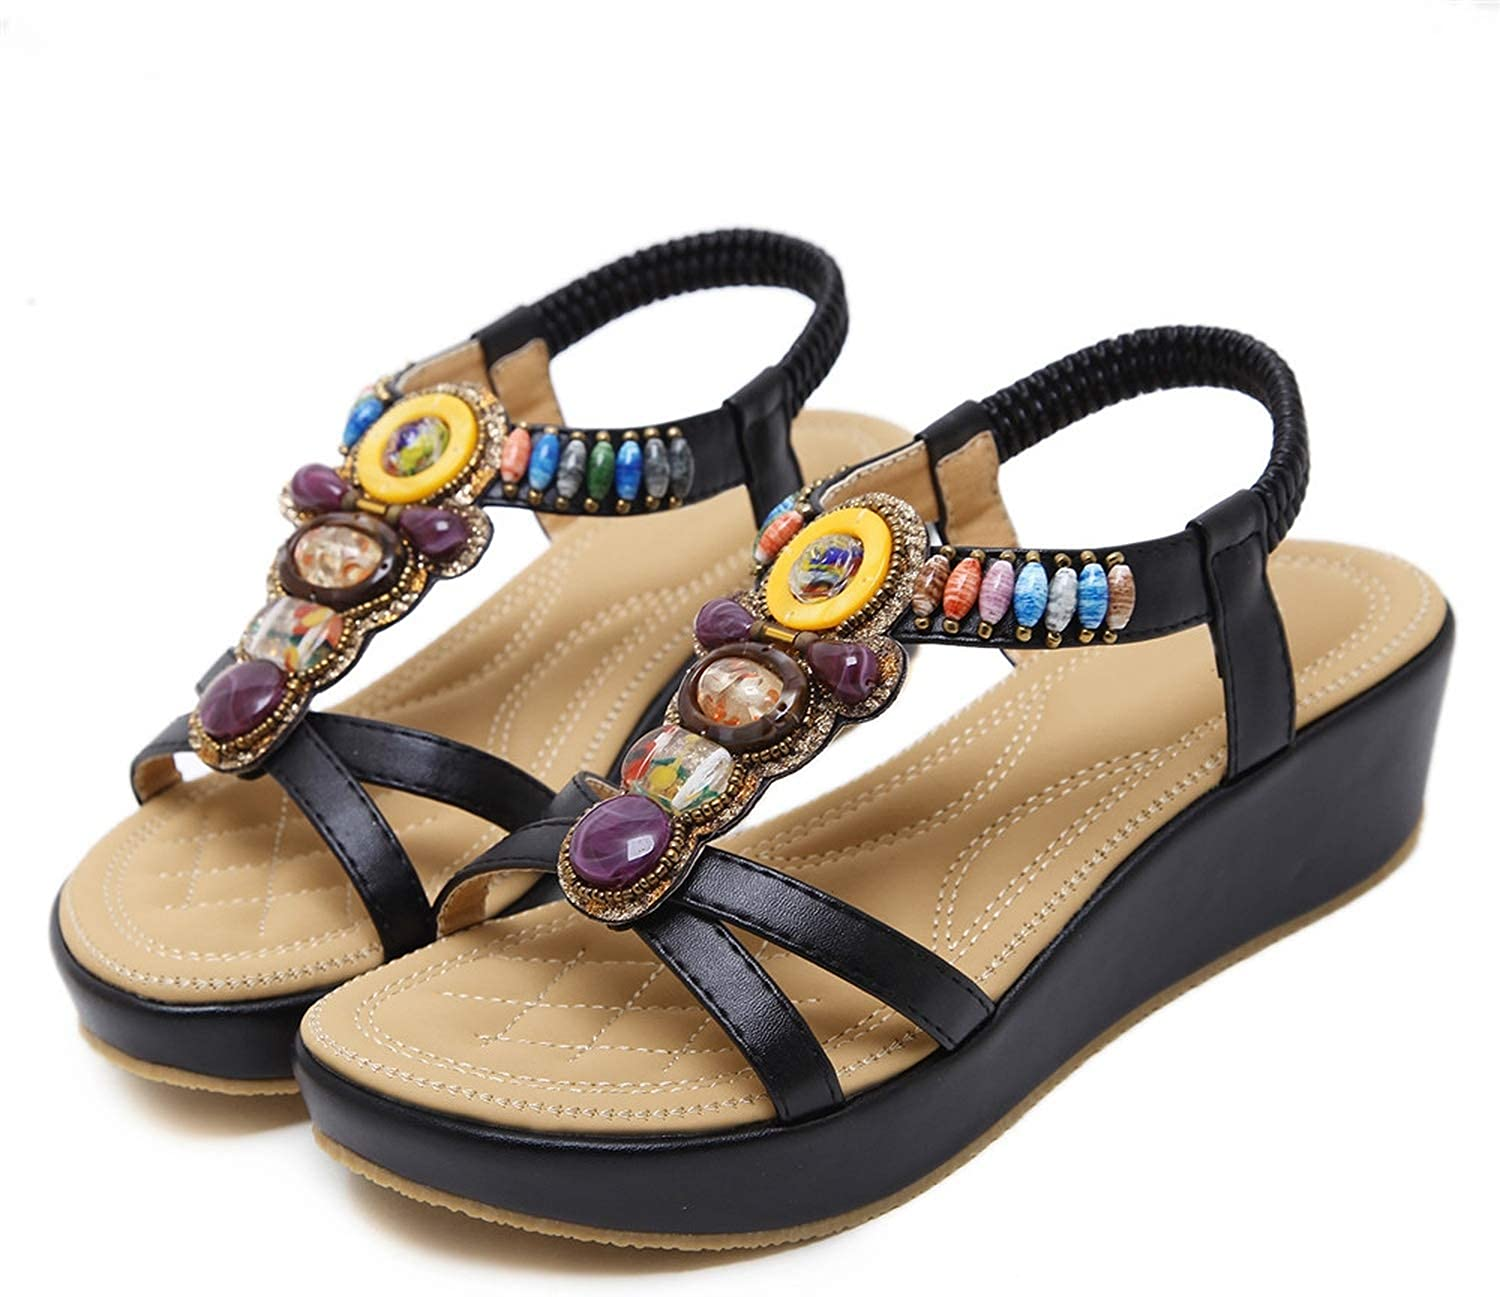 Lazy&Sexy-Heels Black Apricot Summer shoes Woman Platform Wedges shoes Casual Comfortable Sandals Women